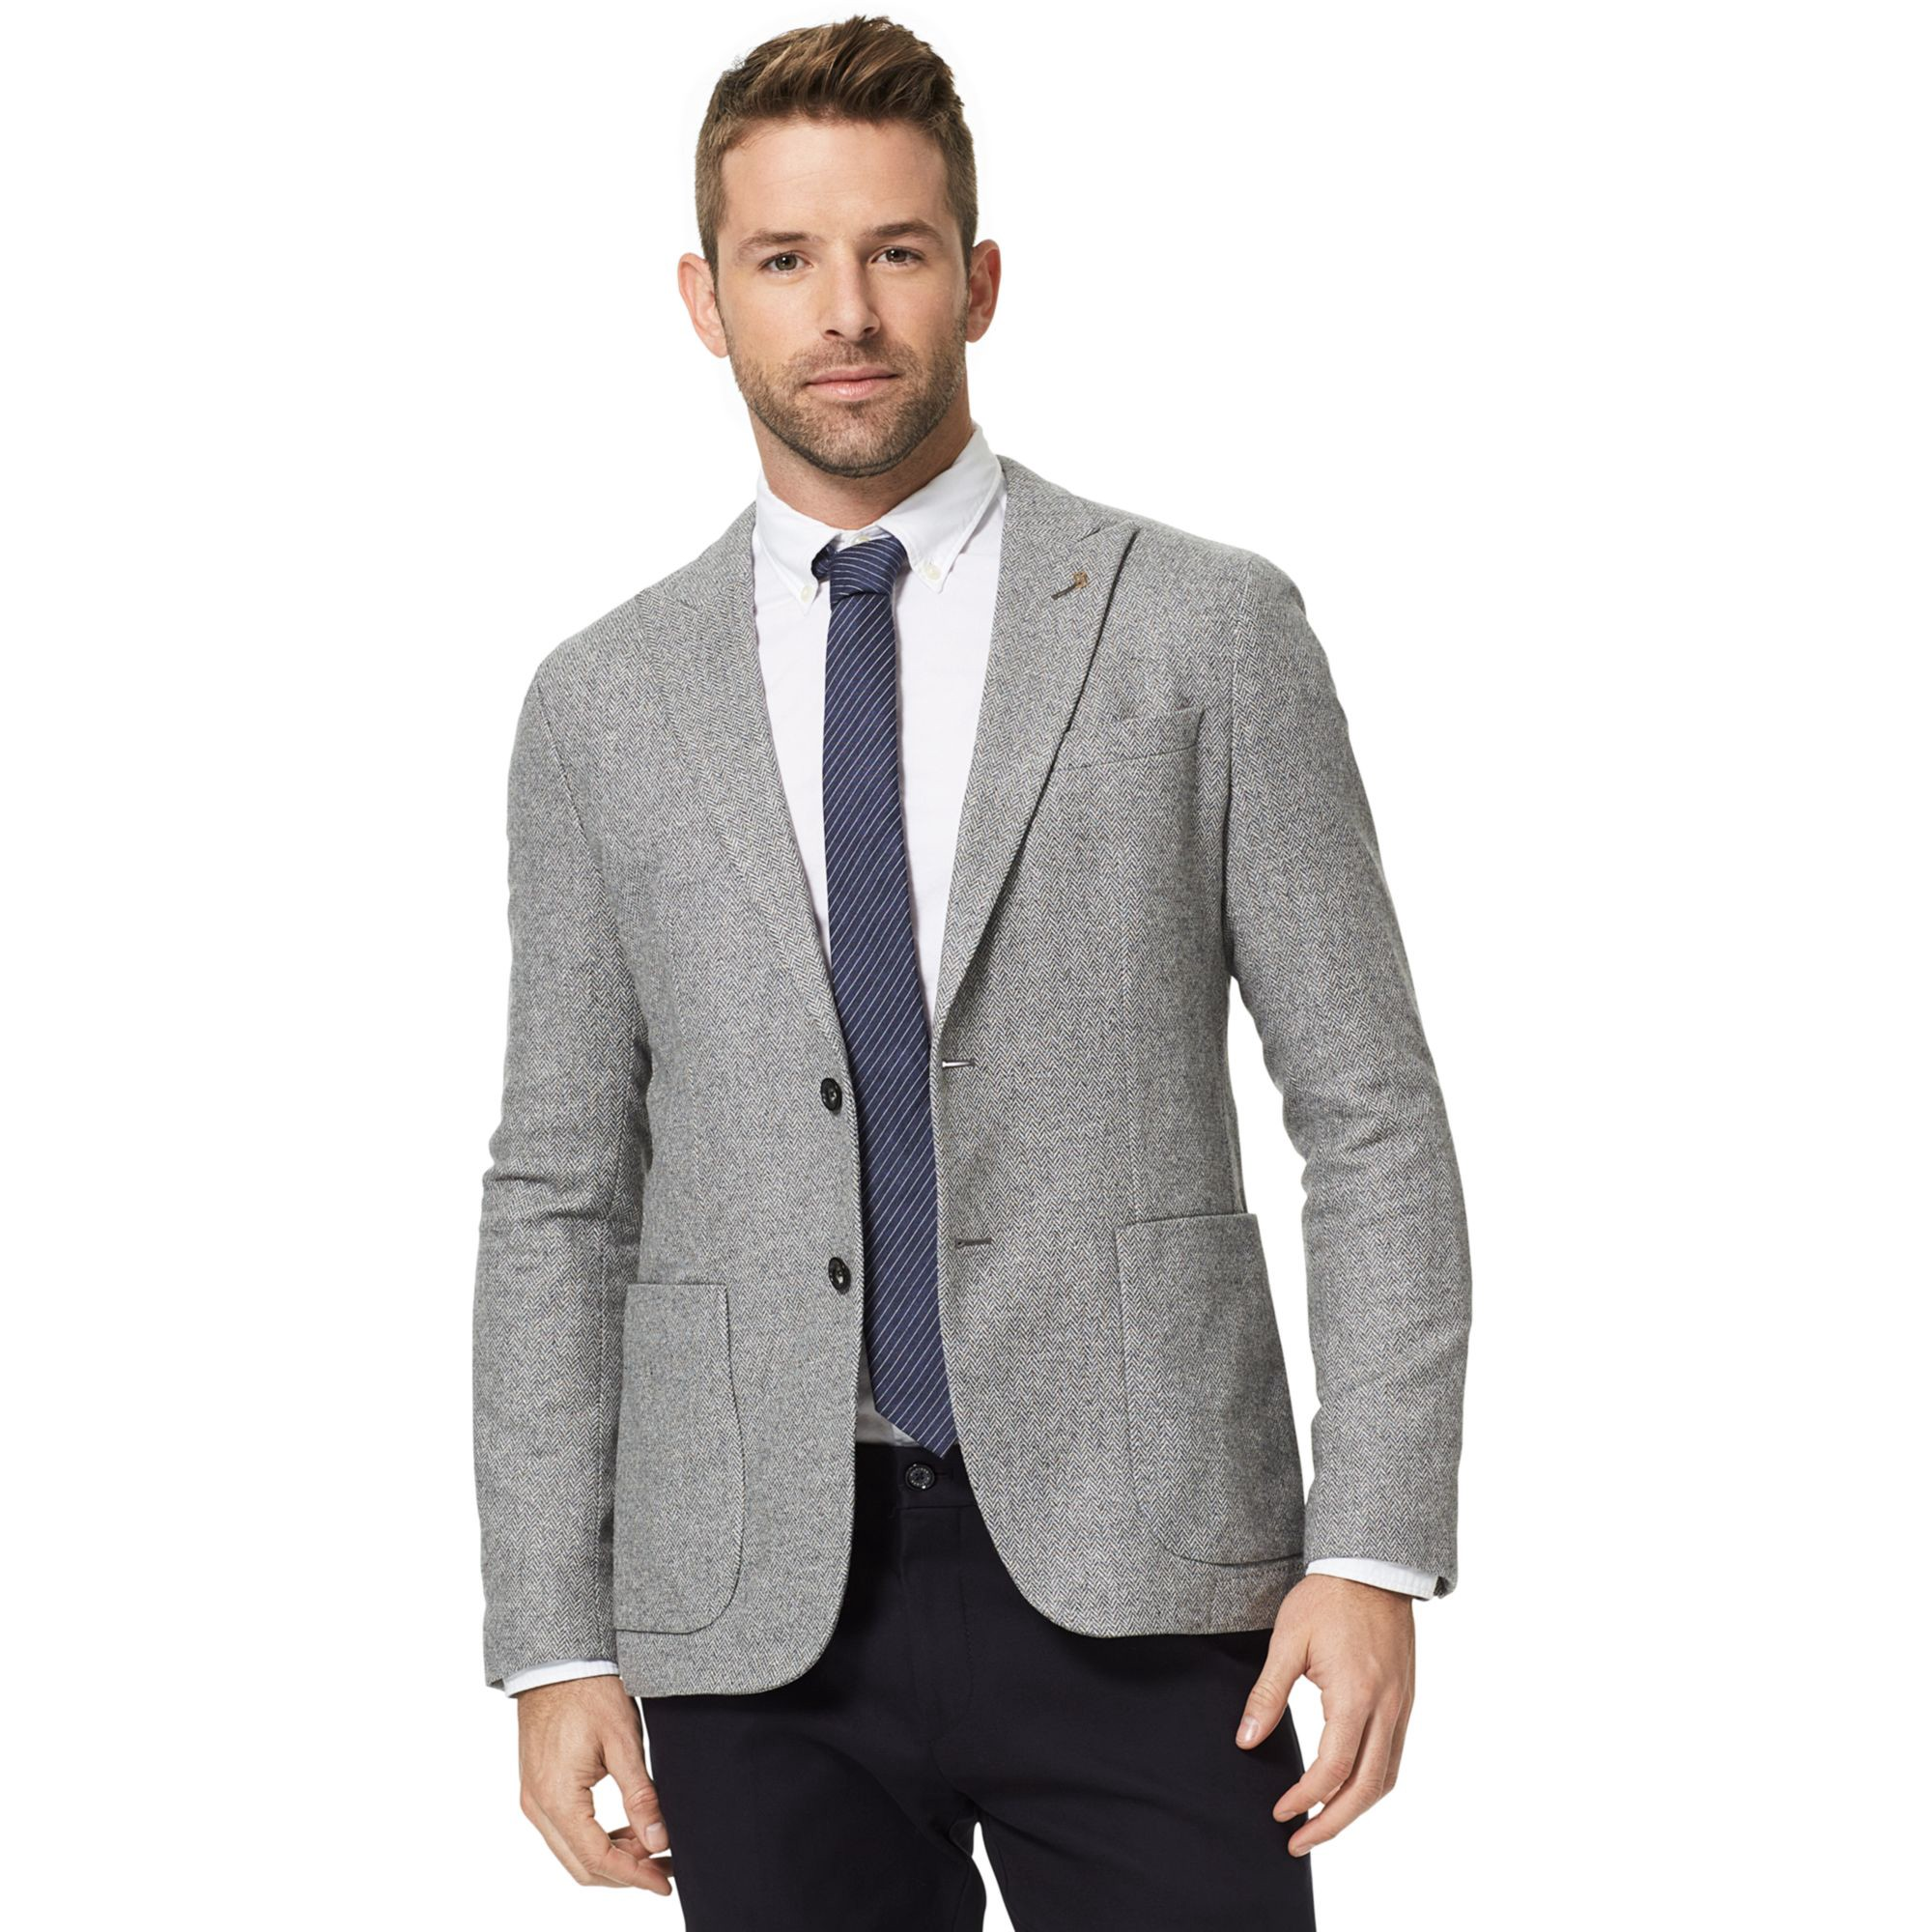 TOMMY HILFIGER Tailored Collection Slim Fit Blazer - Grey Brushed Herringbone